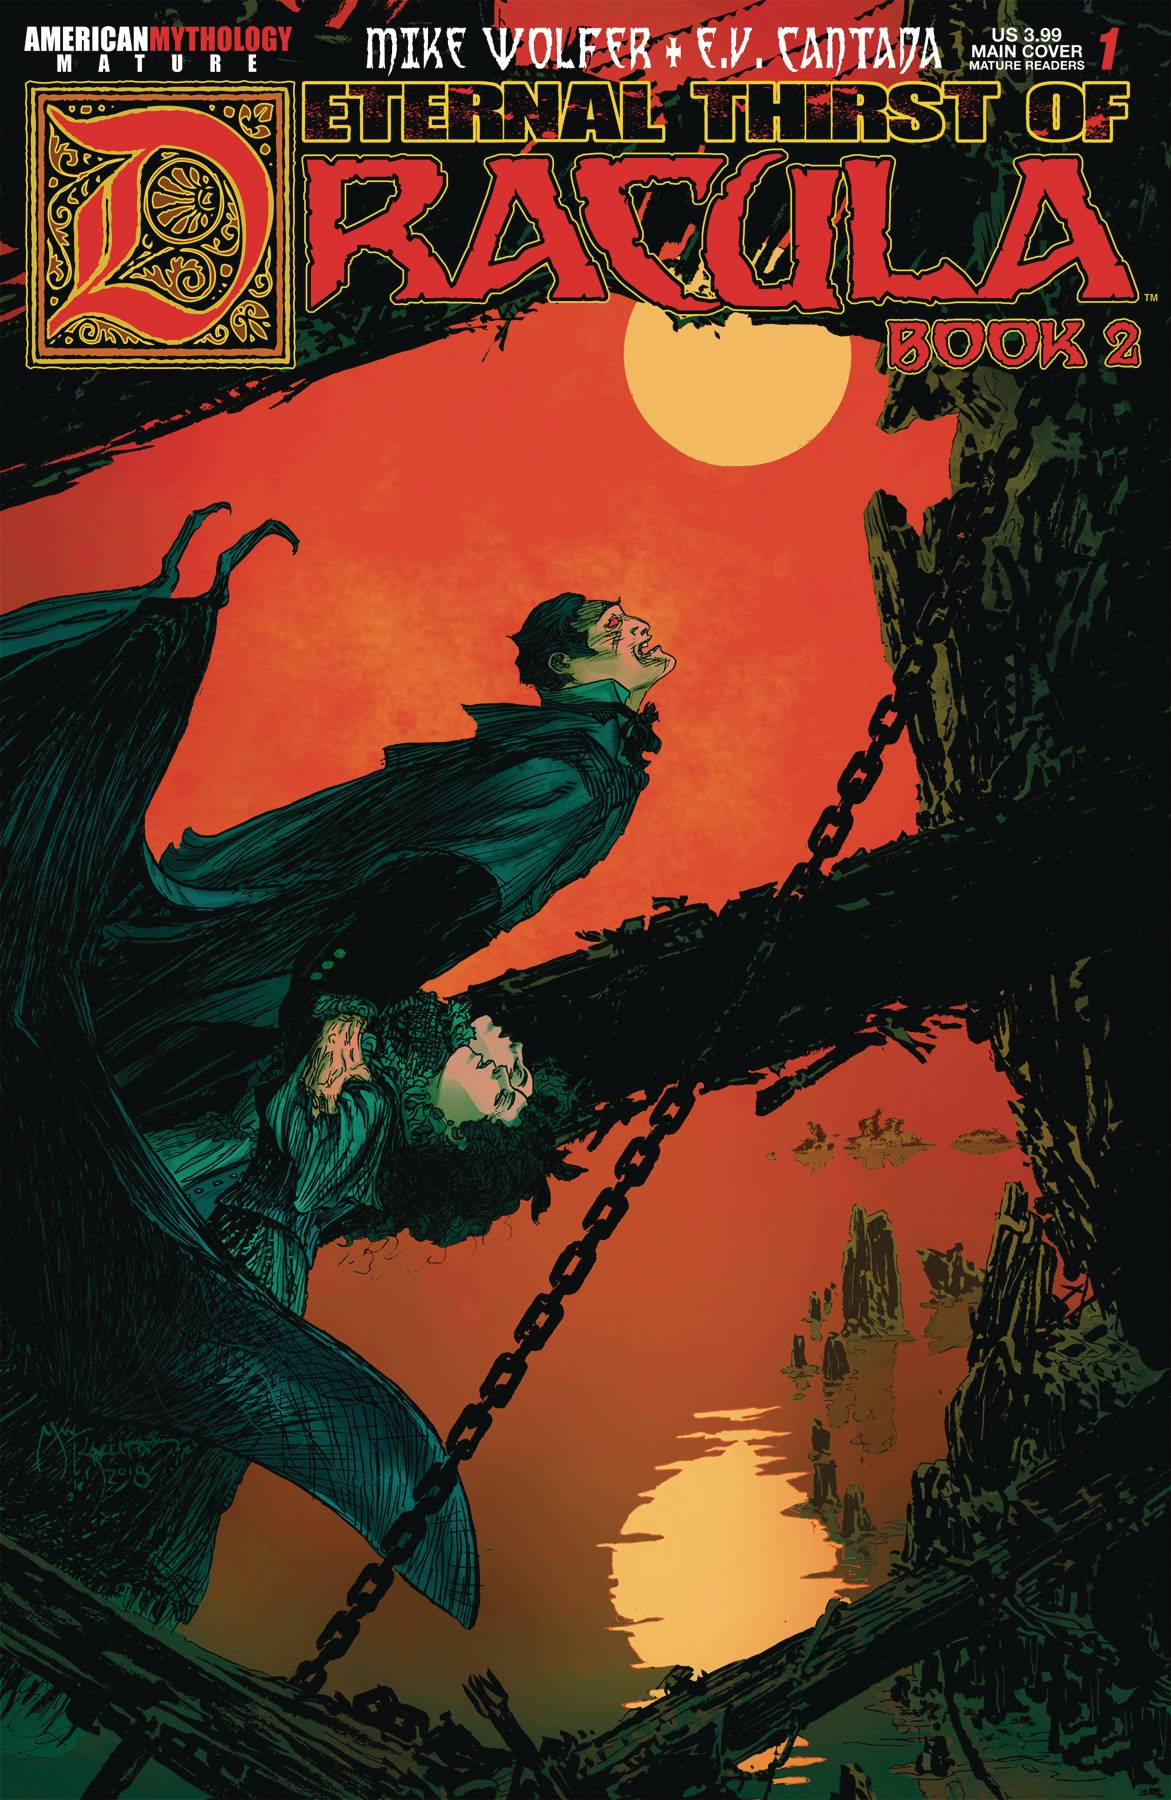 ETERNAL THIRST OF DRACULA 2 #1 (MR)